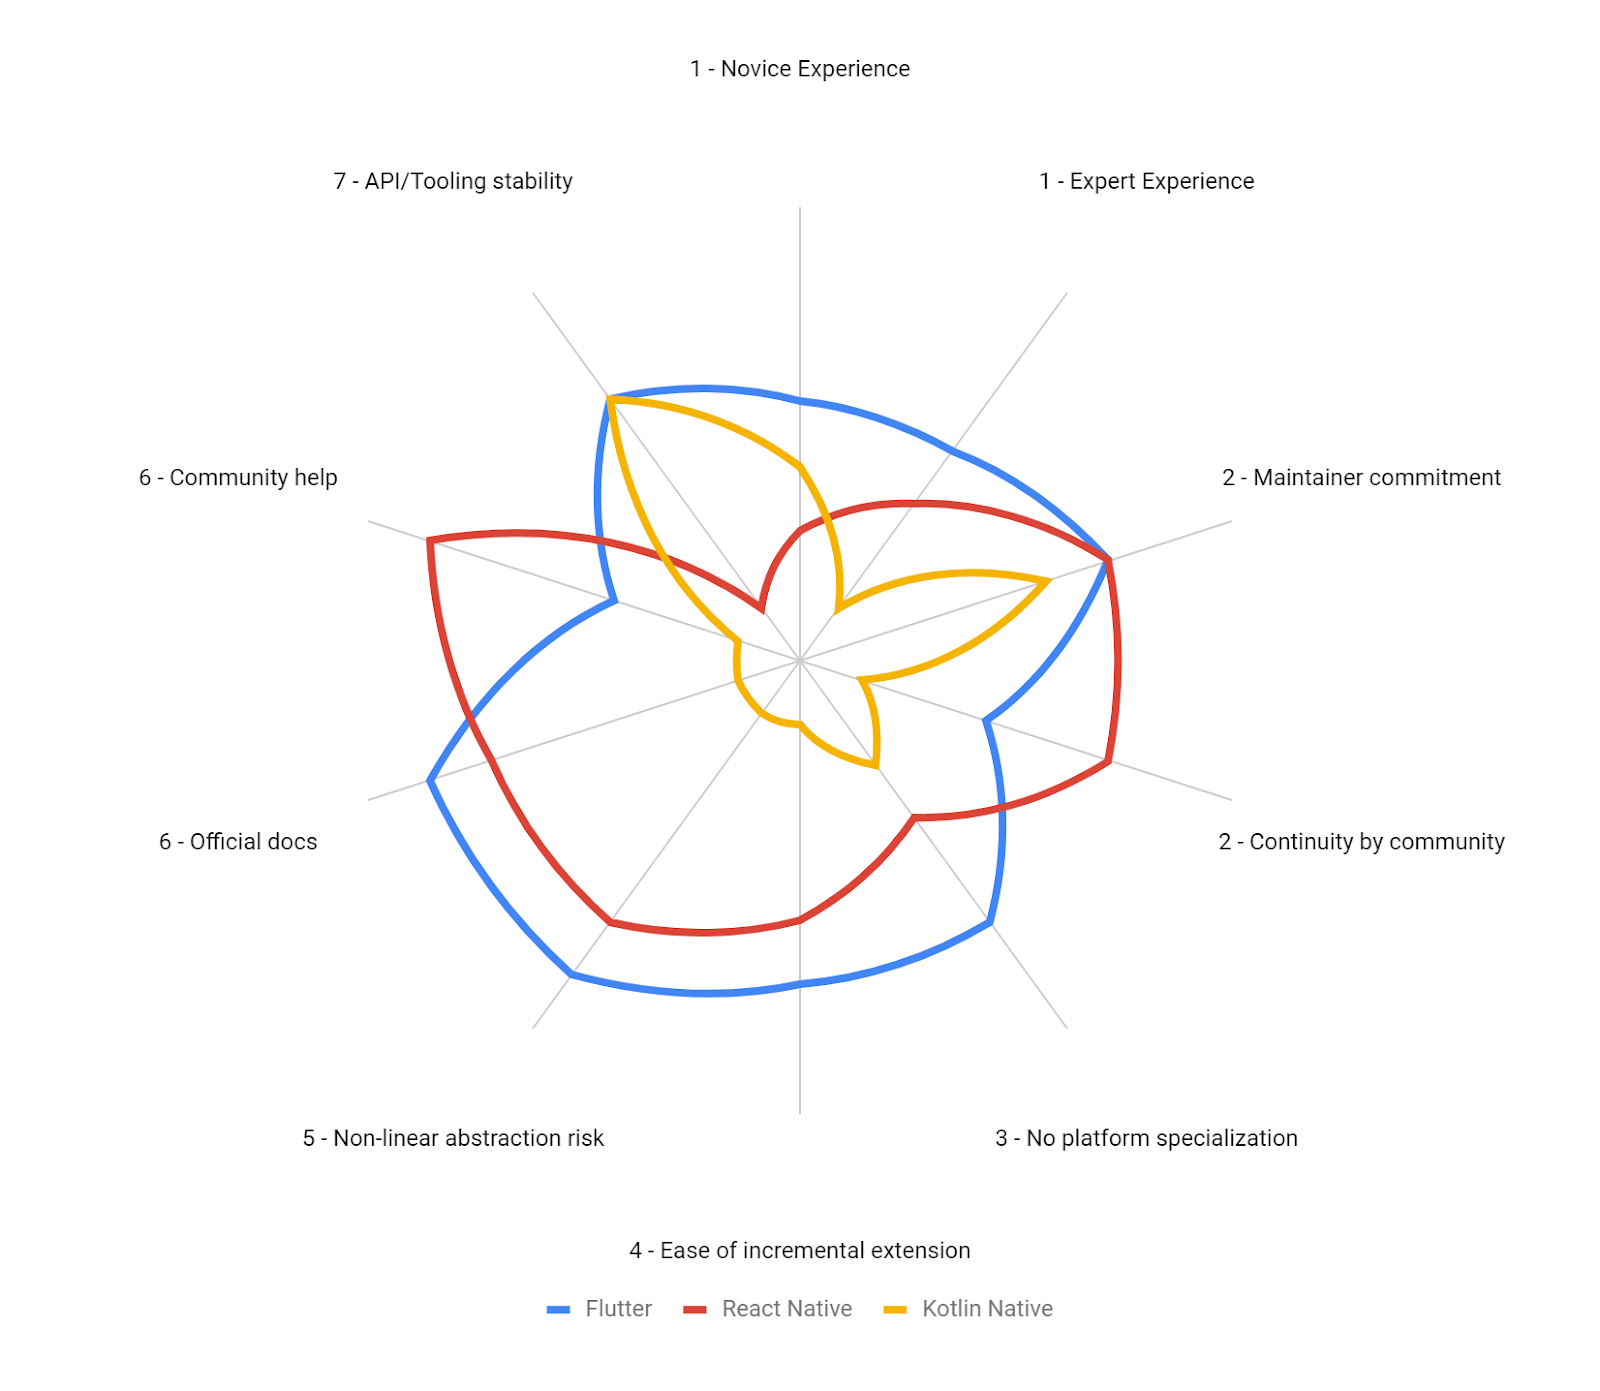 Radar chart showing criteria's score from 0–5. Kotlin Native's  loosing, React Native stronger in 1 point, and Flutter wins.